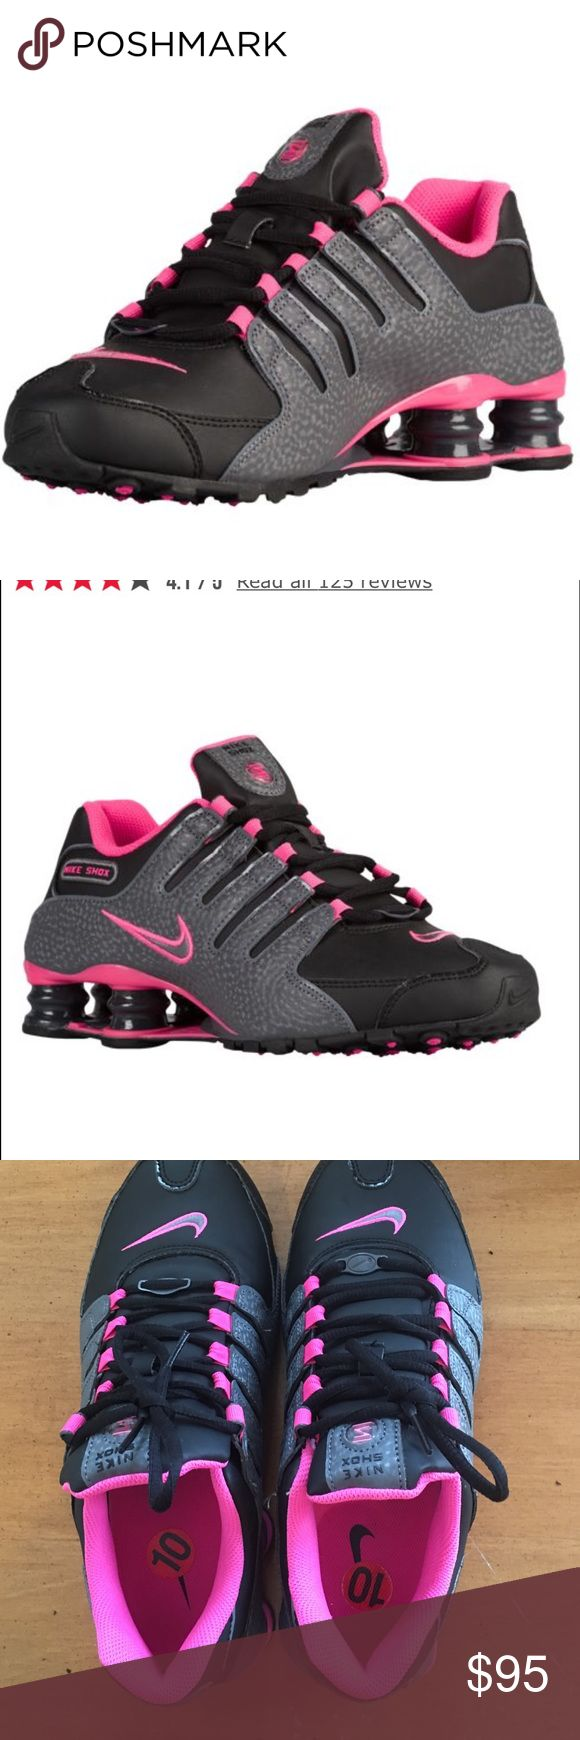 Nike Shox Nike Shox, Black, Grey, Hot Pink, WORN for 30 minutes! NO BOX INCLUDED, I accidentally threw away. Size 10, BRAND NEW Nike Shoes Athletic Shoes